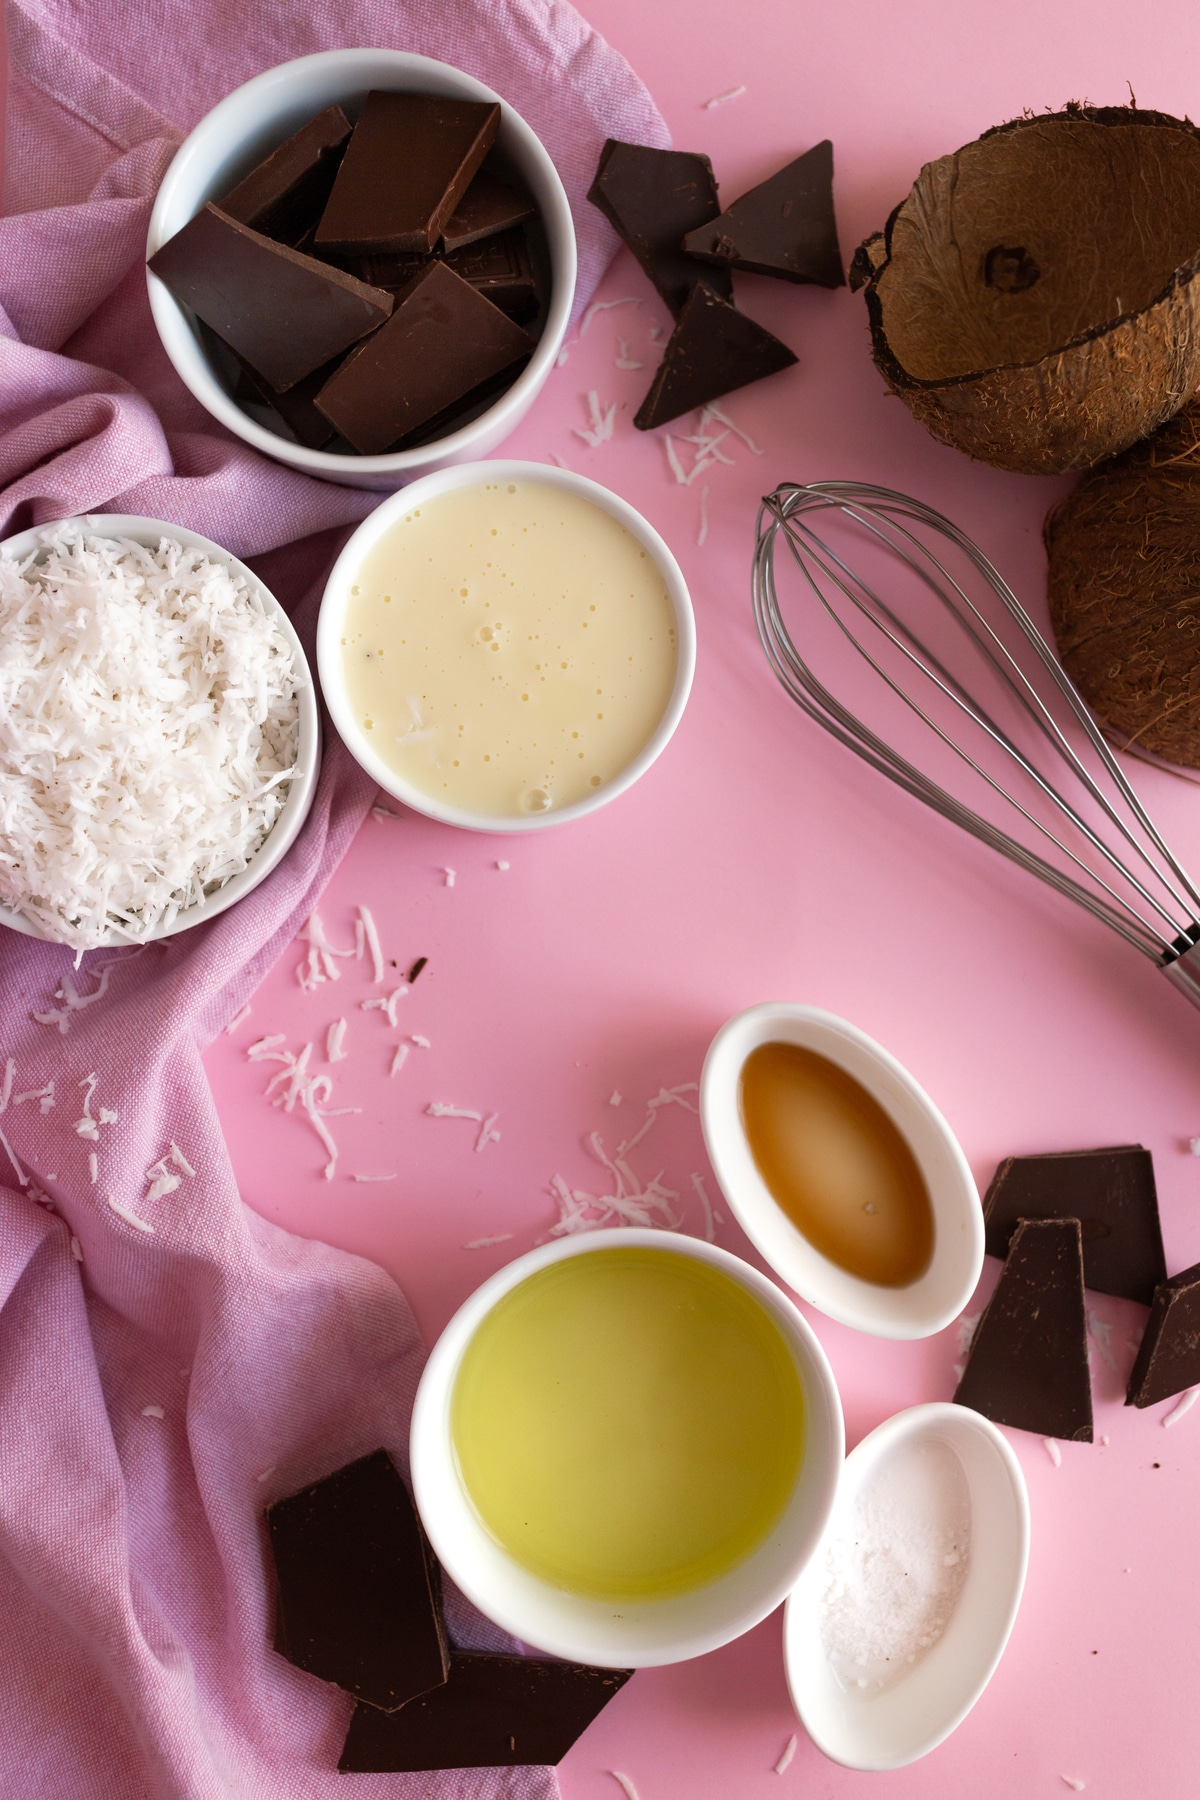 Ingredients for coconut macaroons